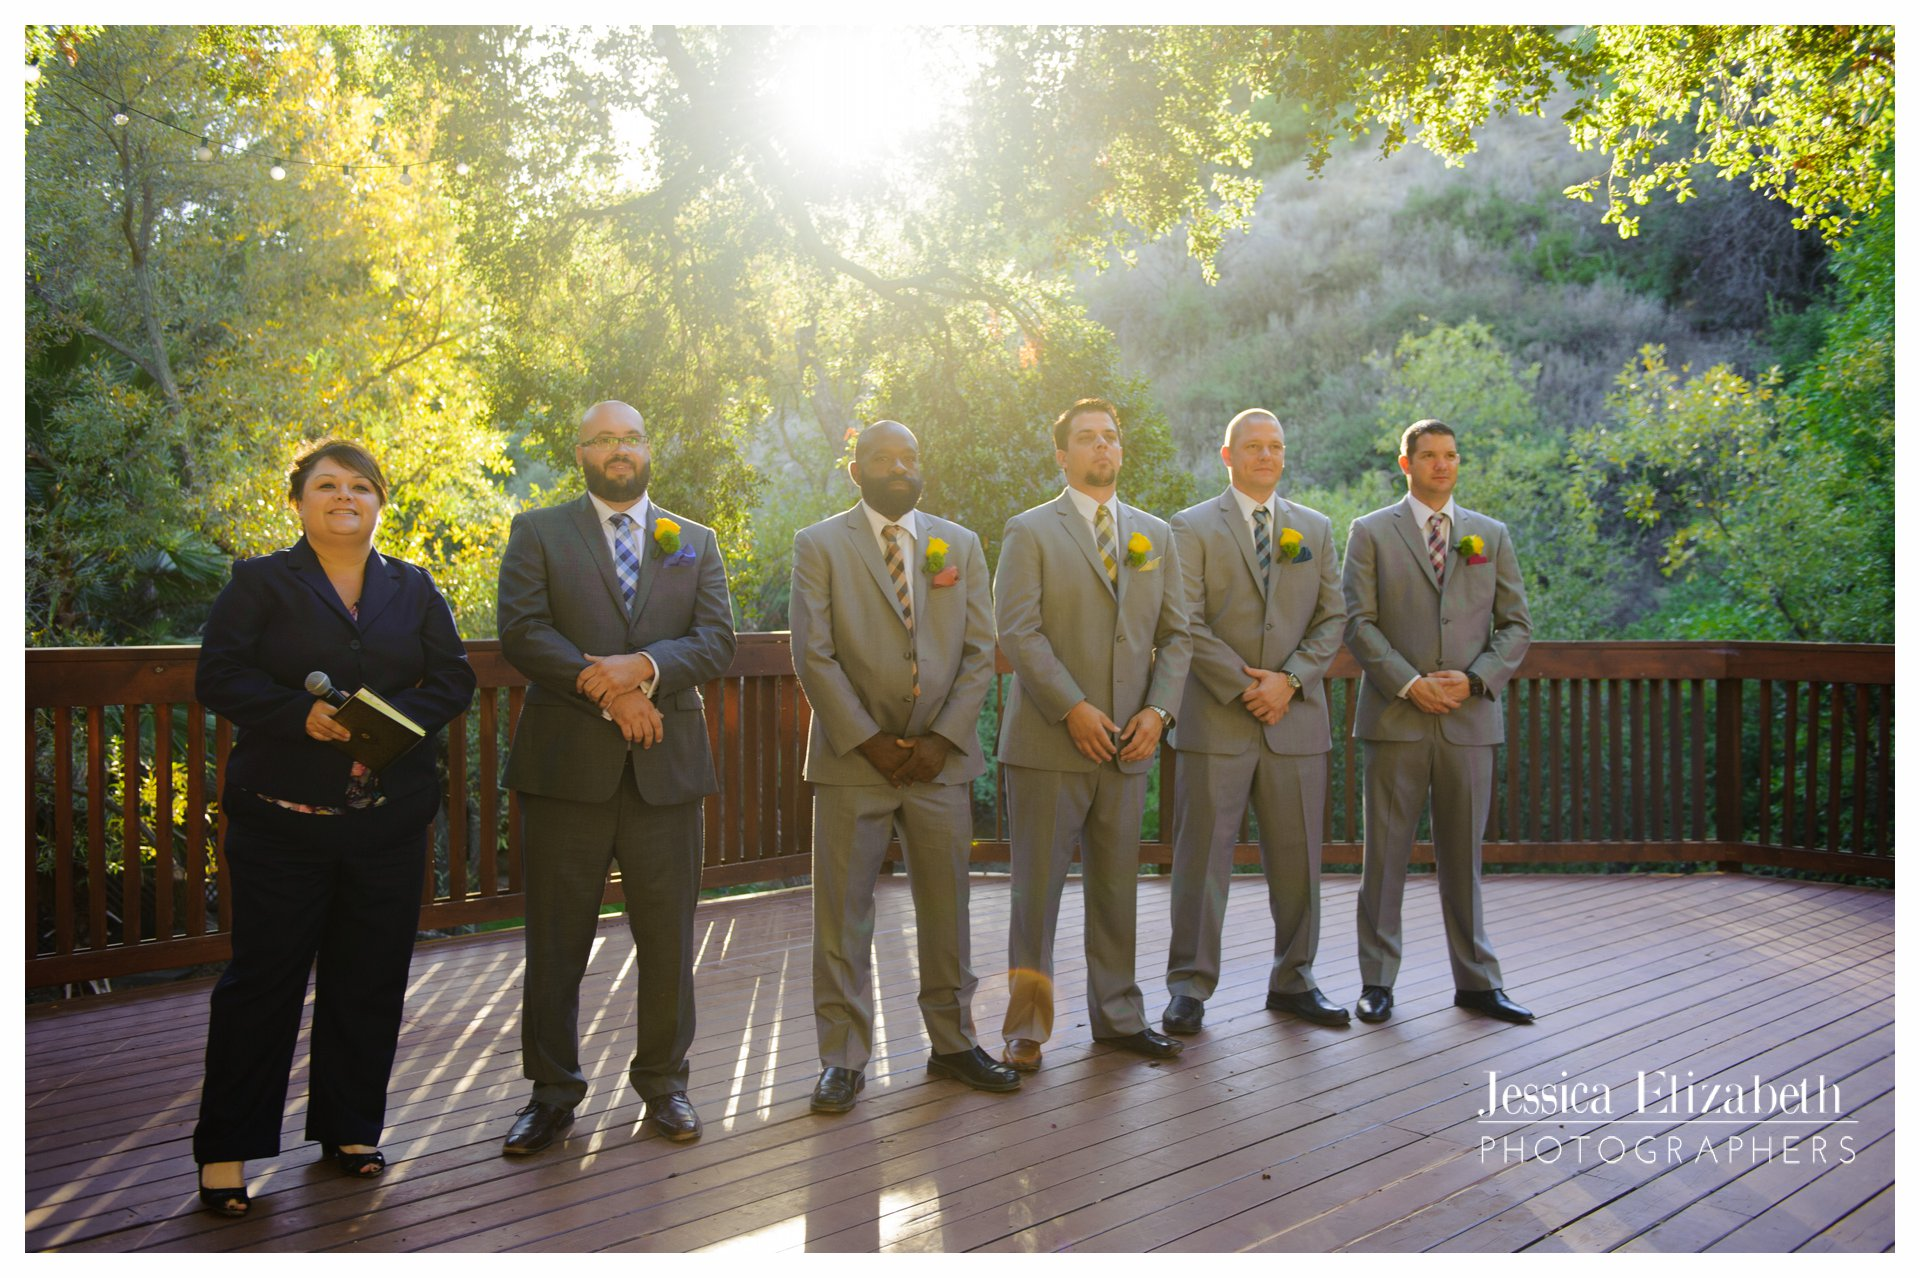 23-The 1909 Malibu Wedding photography by Jessica Elizabeth-w